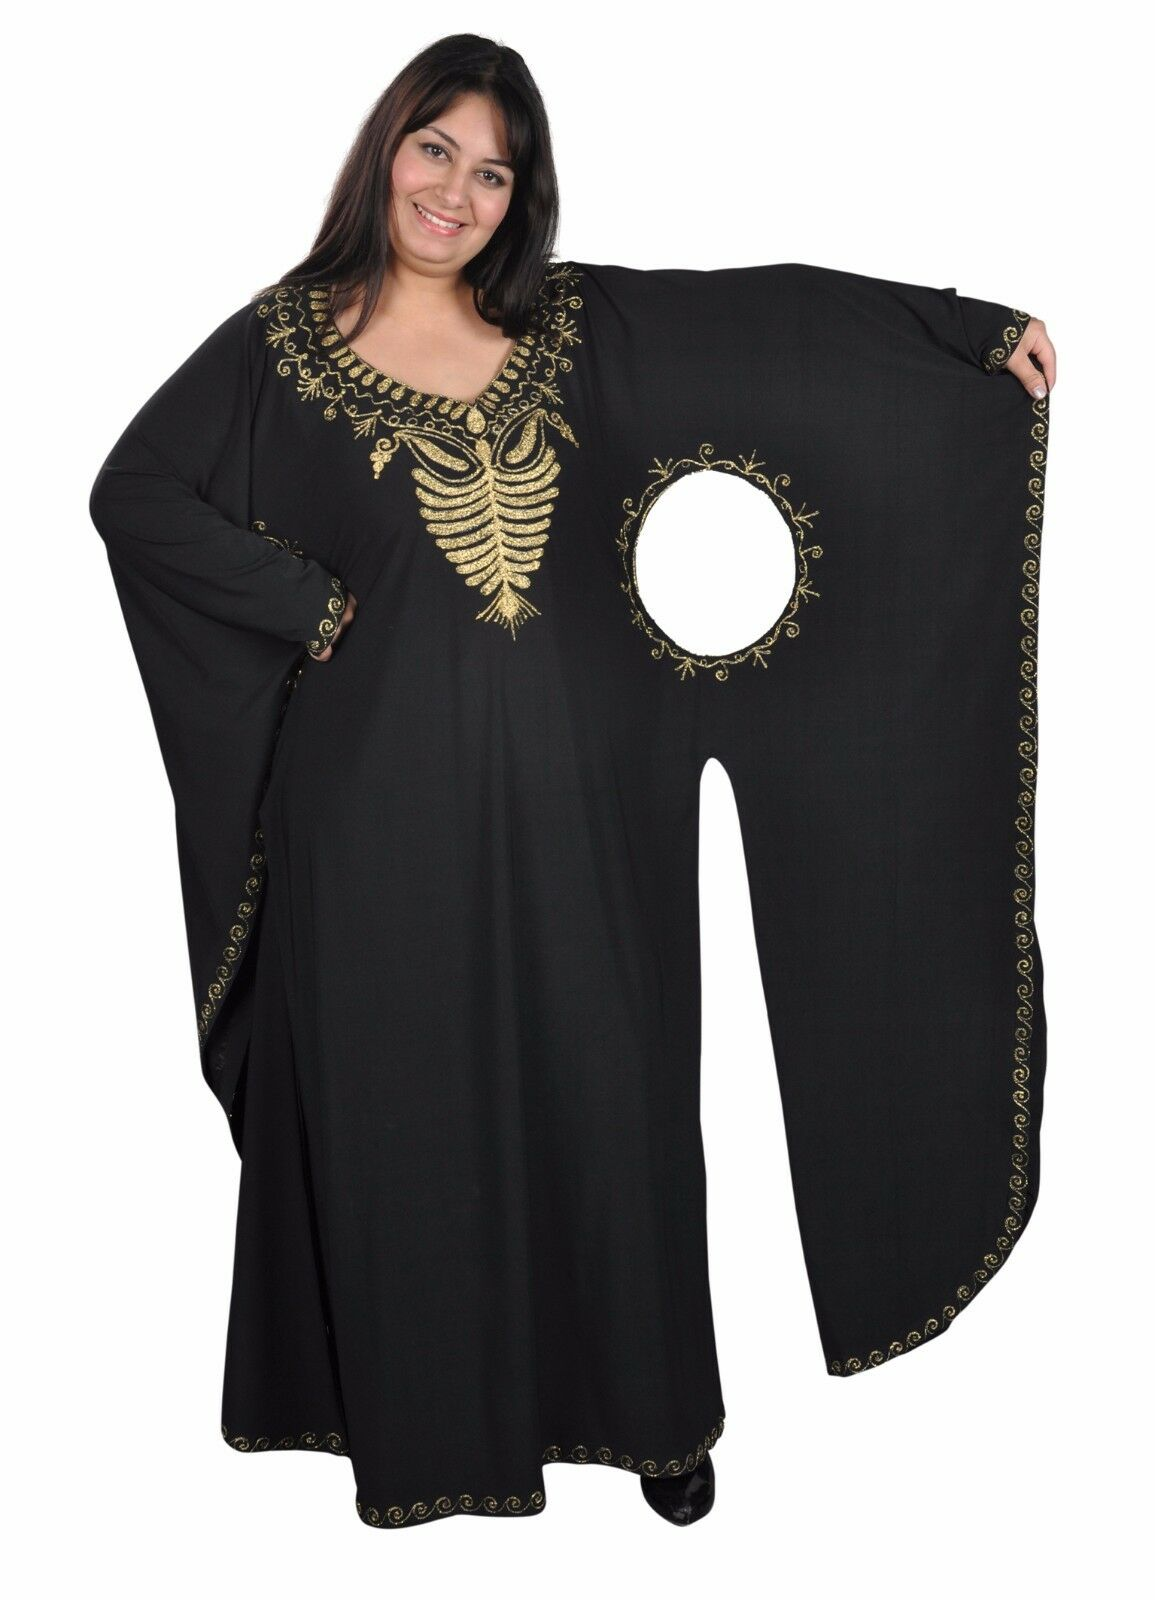 Extravagant Caftan Dress Evening Dress Party Dress with gold Embroidery